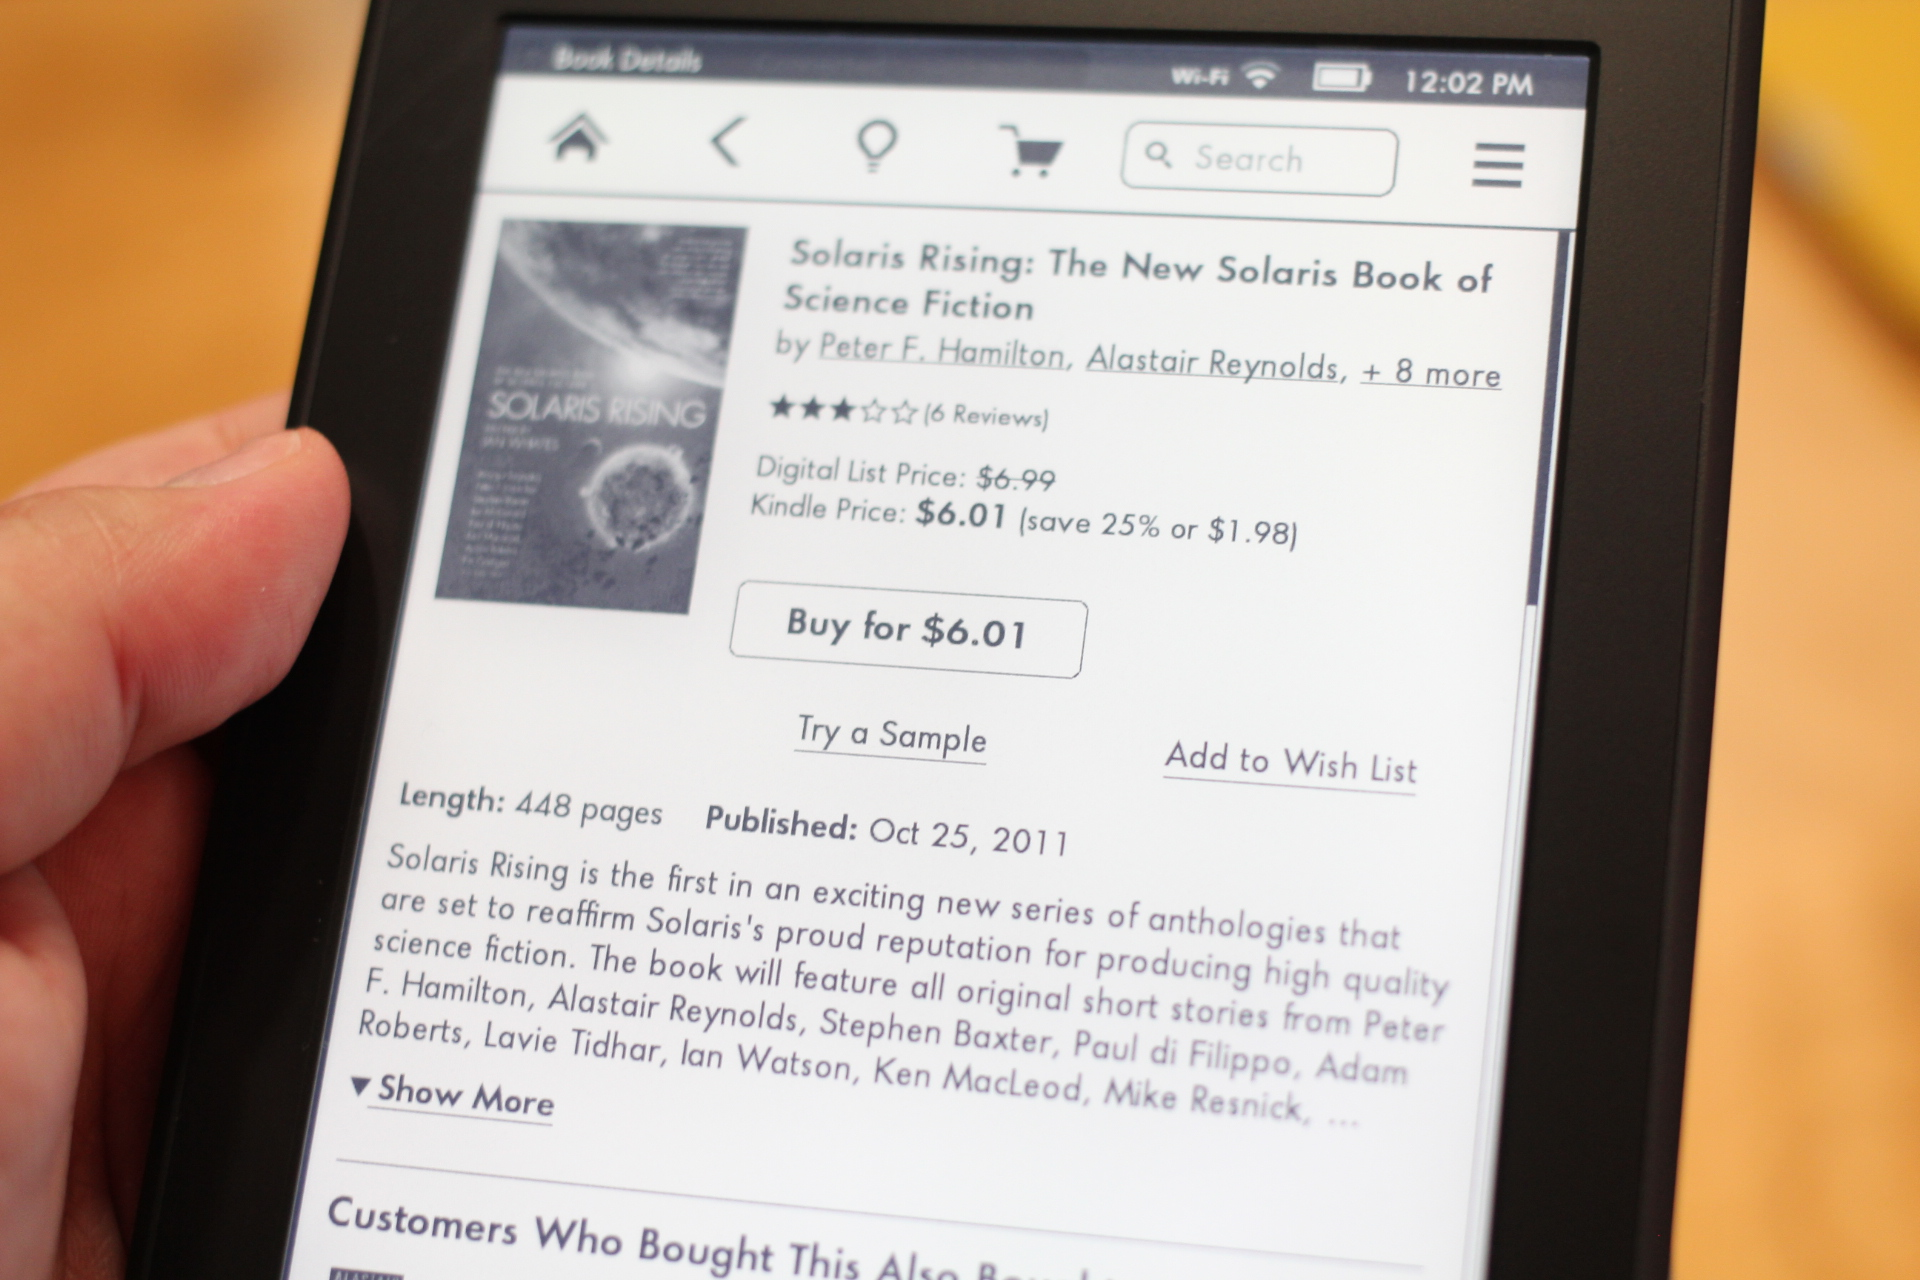 Amazon Kindle Lending Library comes to UK, Germany, France this month with 200K books, KDP bumped to ...